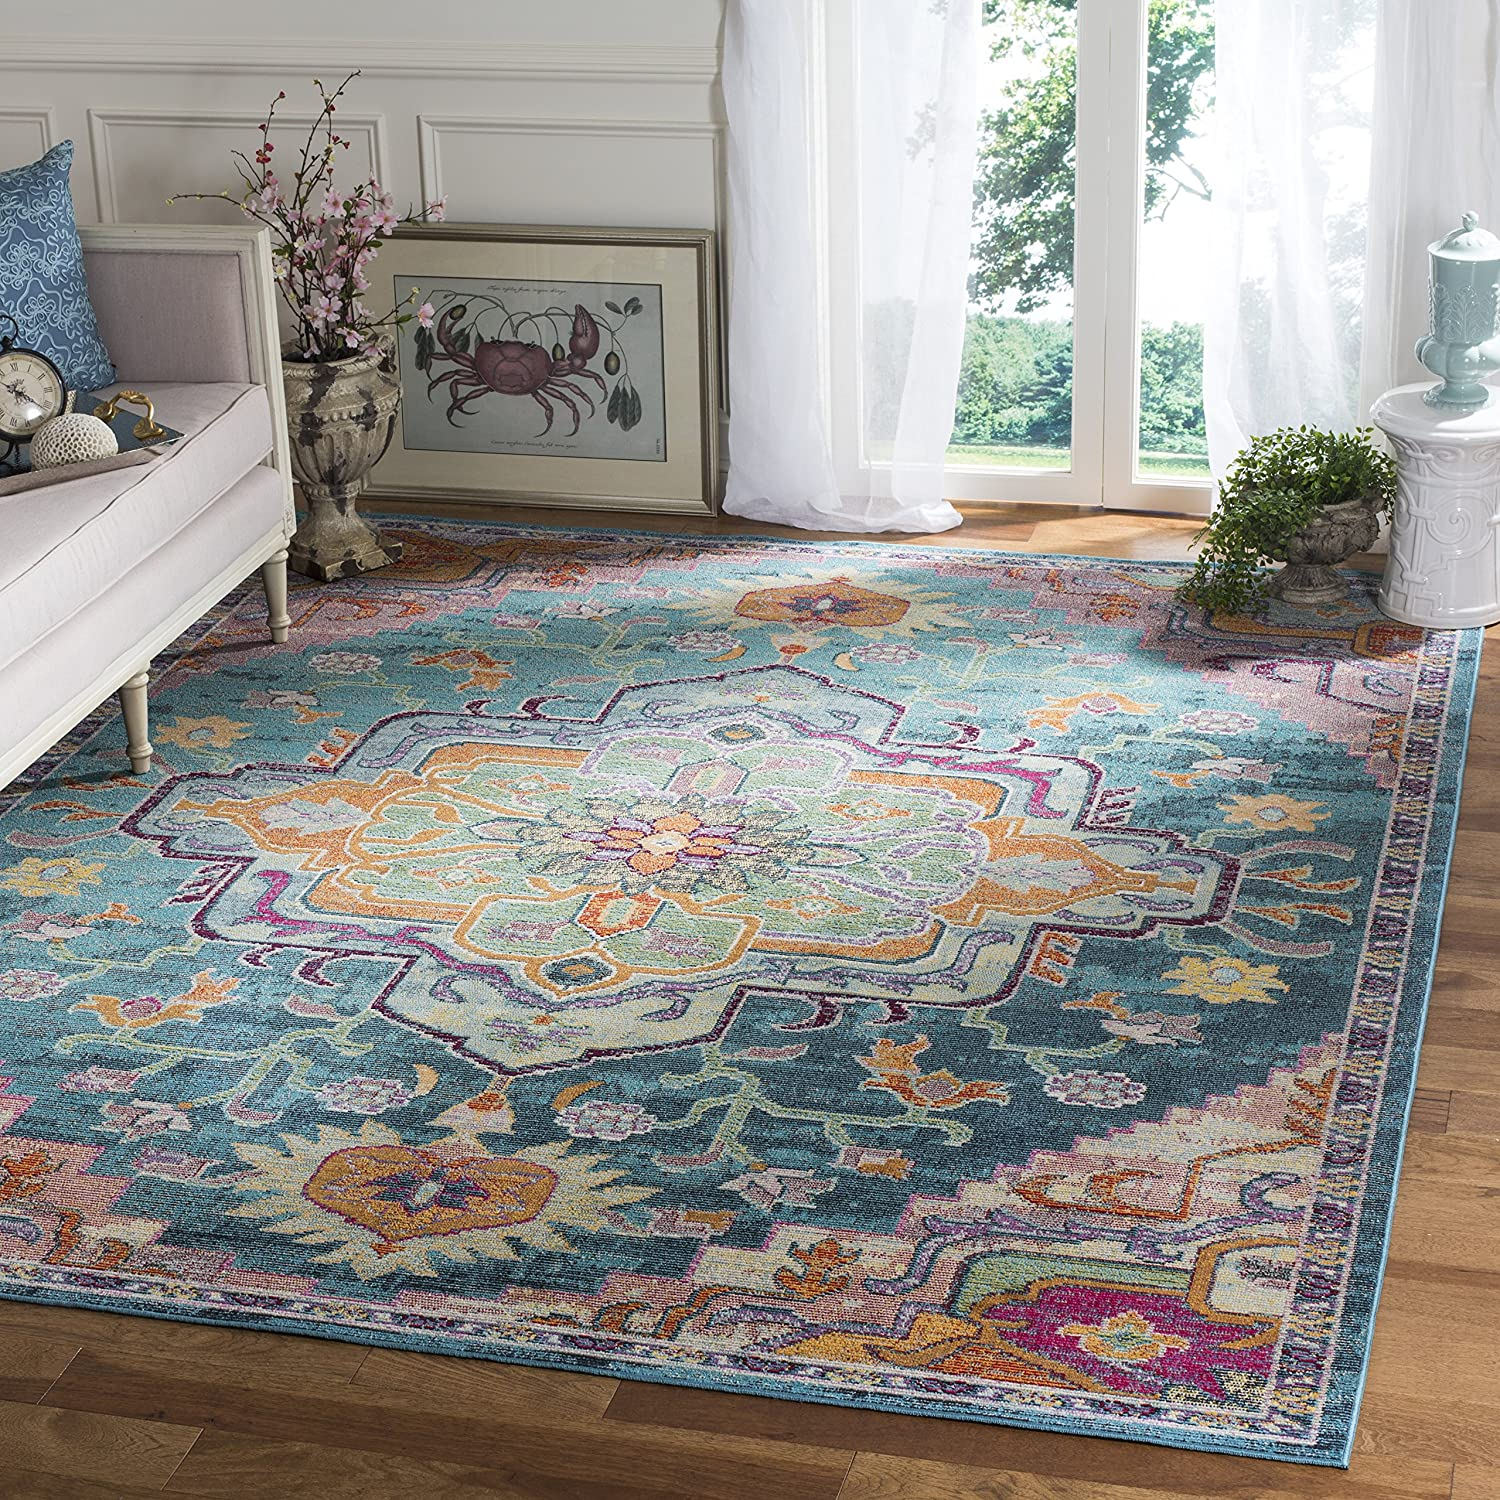 Safavieh Crystal Collection CRS501T Boho Chic Vintage Distressed Area Rug, 8' x 10', Teal/Rose